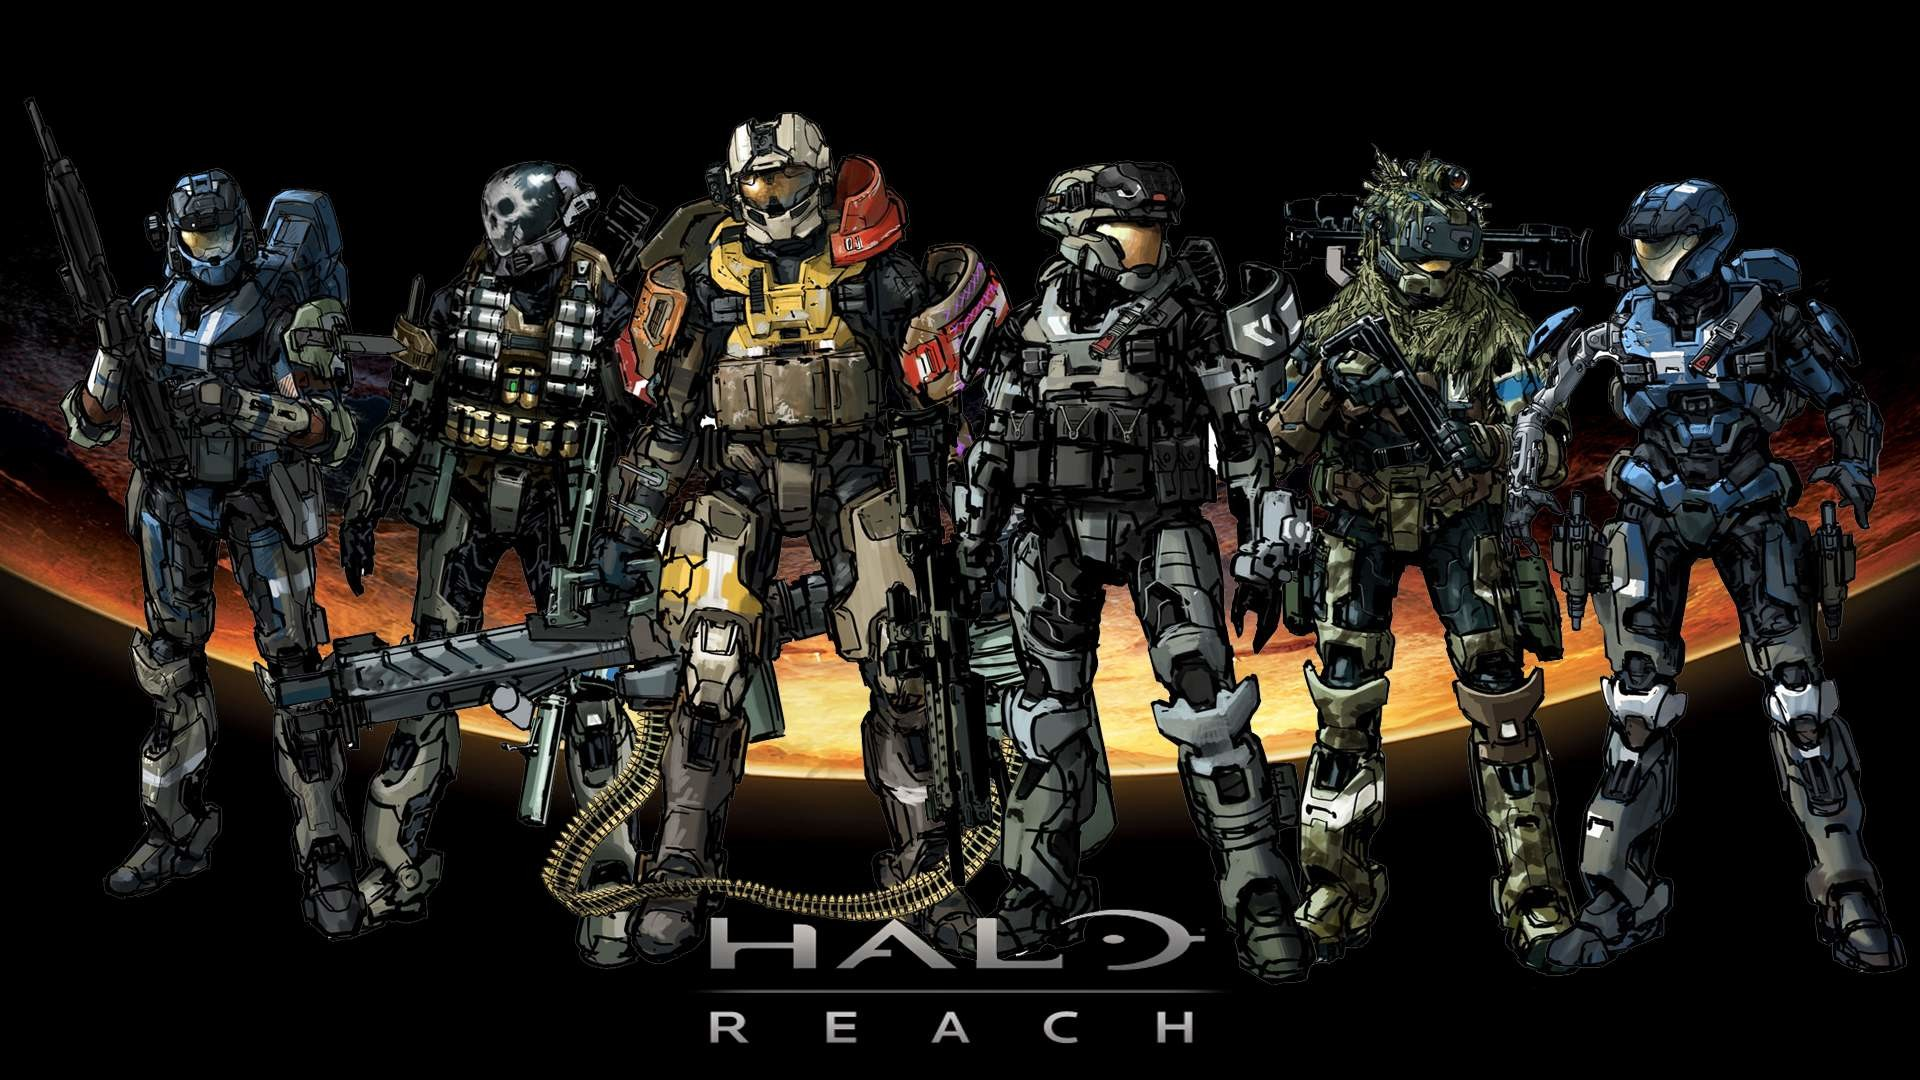 1920x1080 halo backgrounds | Halo Reach 1080p Wallpaper Halo Reach 720p Wallpaper